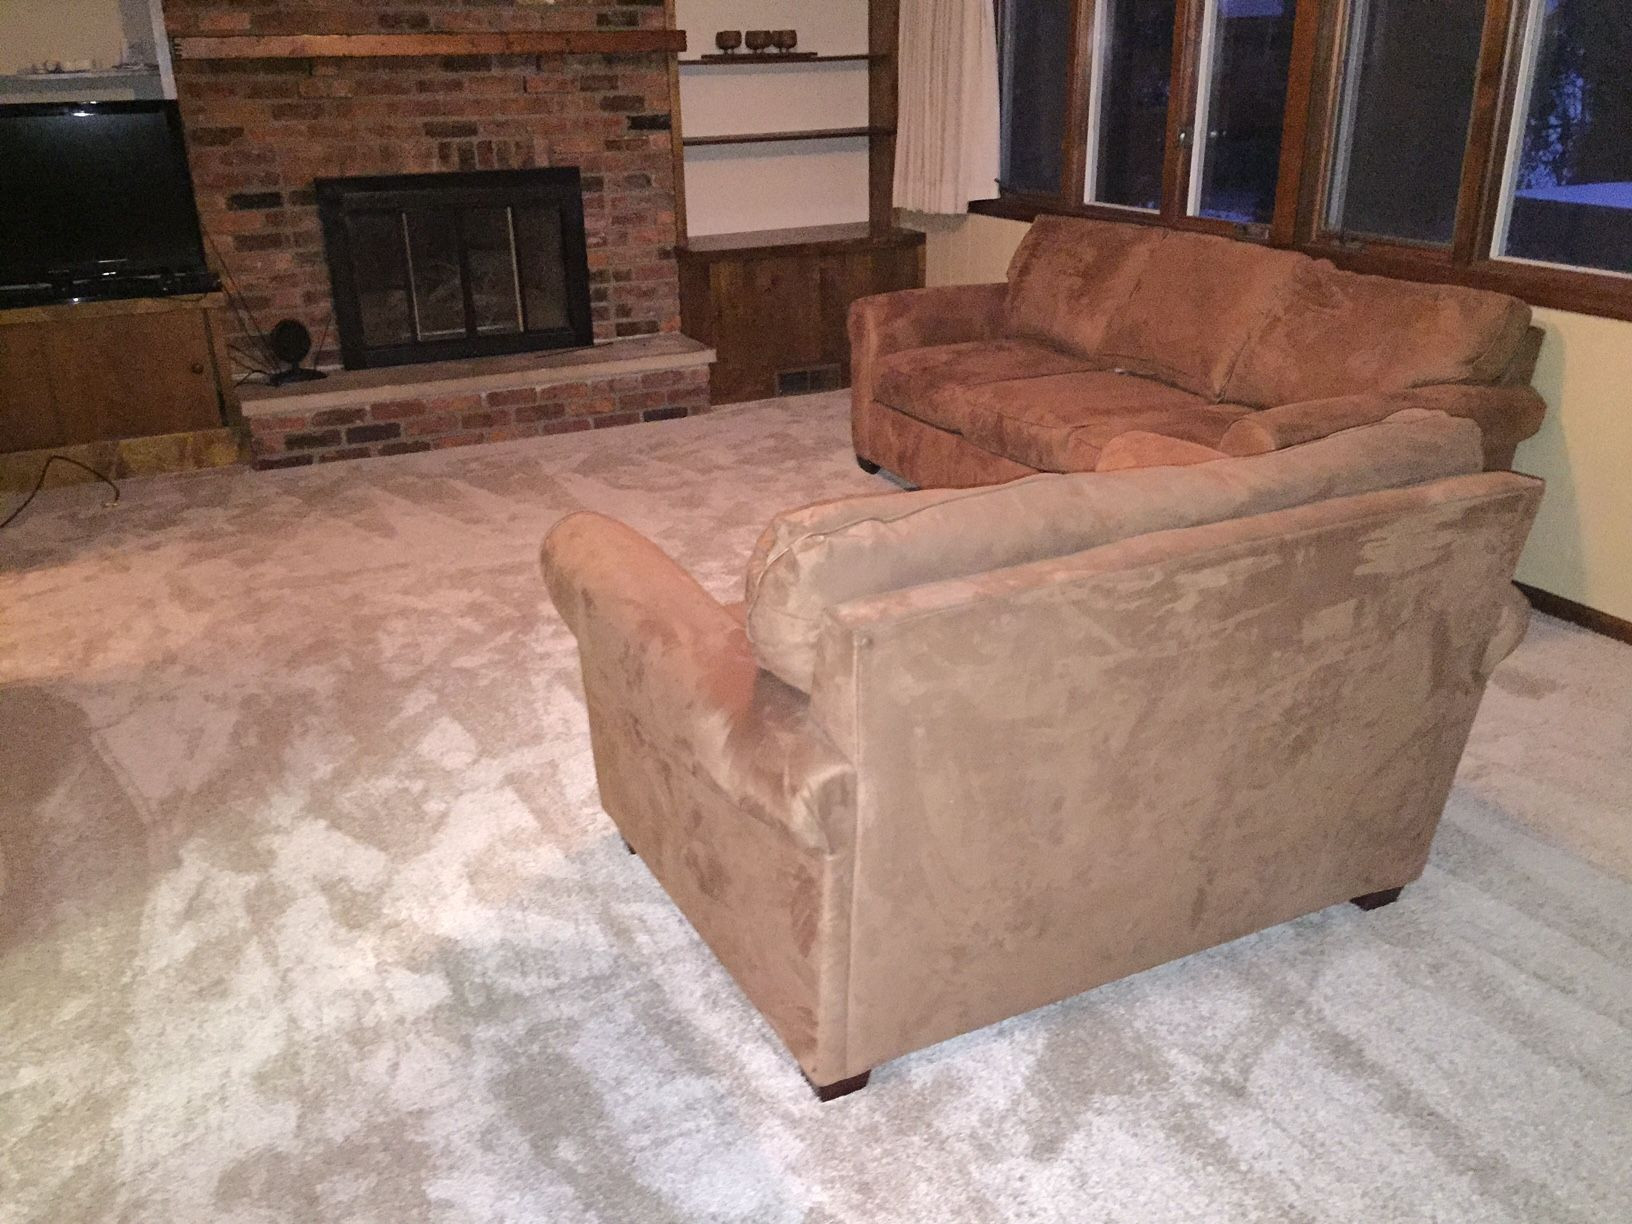 ginger hickory hardwood flooring of cheap carpet installation the carpet guys have installed this new intended for cheap carpet installation the carpet guys have installed this new cosmopolitan ginger which is